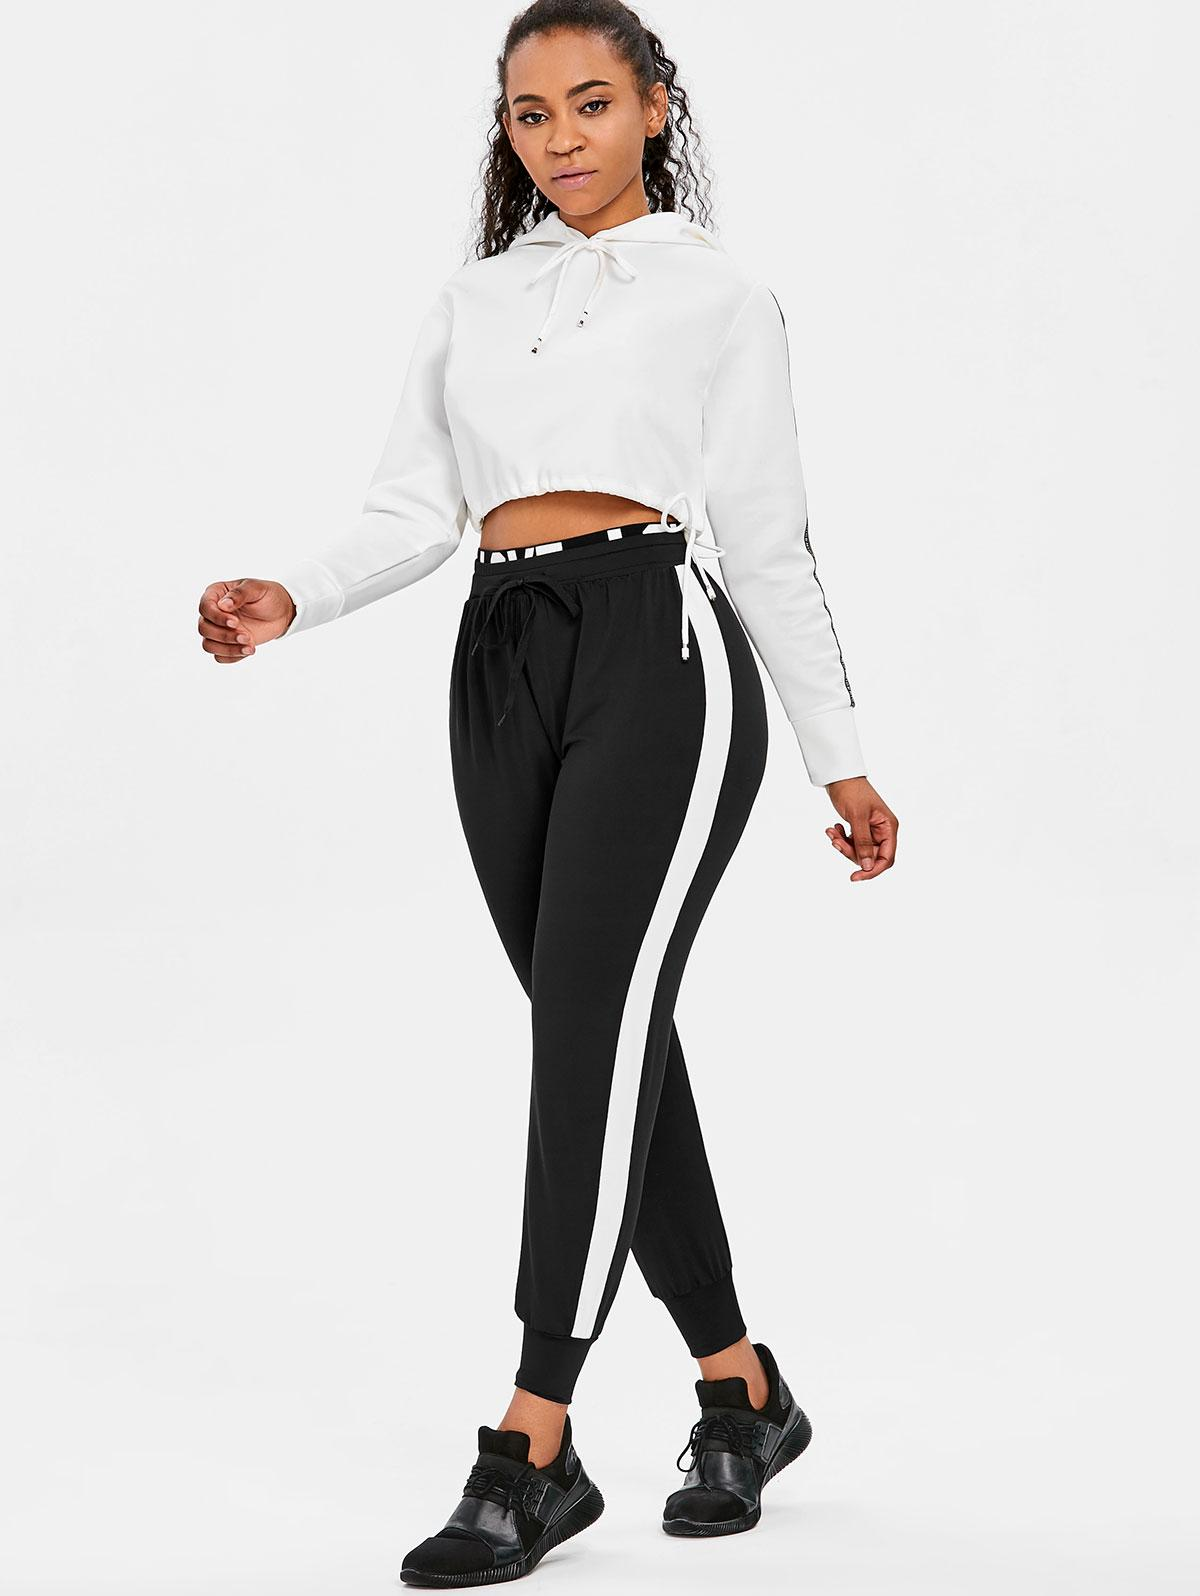 4a04f914 2019 Belleziva Ropa Deportiva Mujer Gym Fitness Yoga Leggings Side Stripe  Tracksuit Pant Elastic Nylon High Waist Sweatpants 2018 New From Hougo, ...